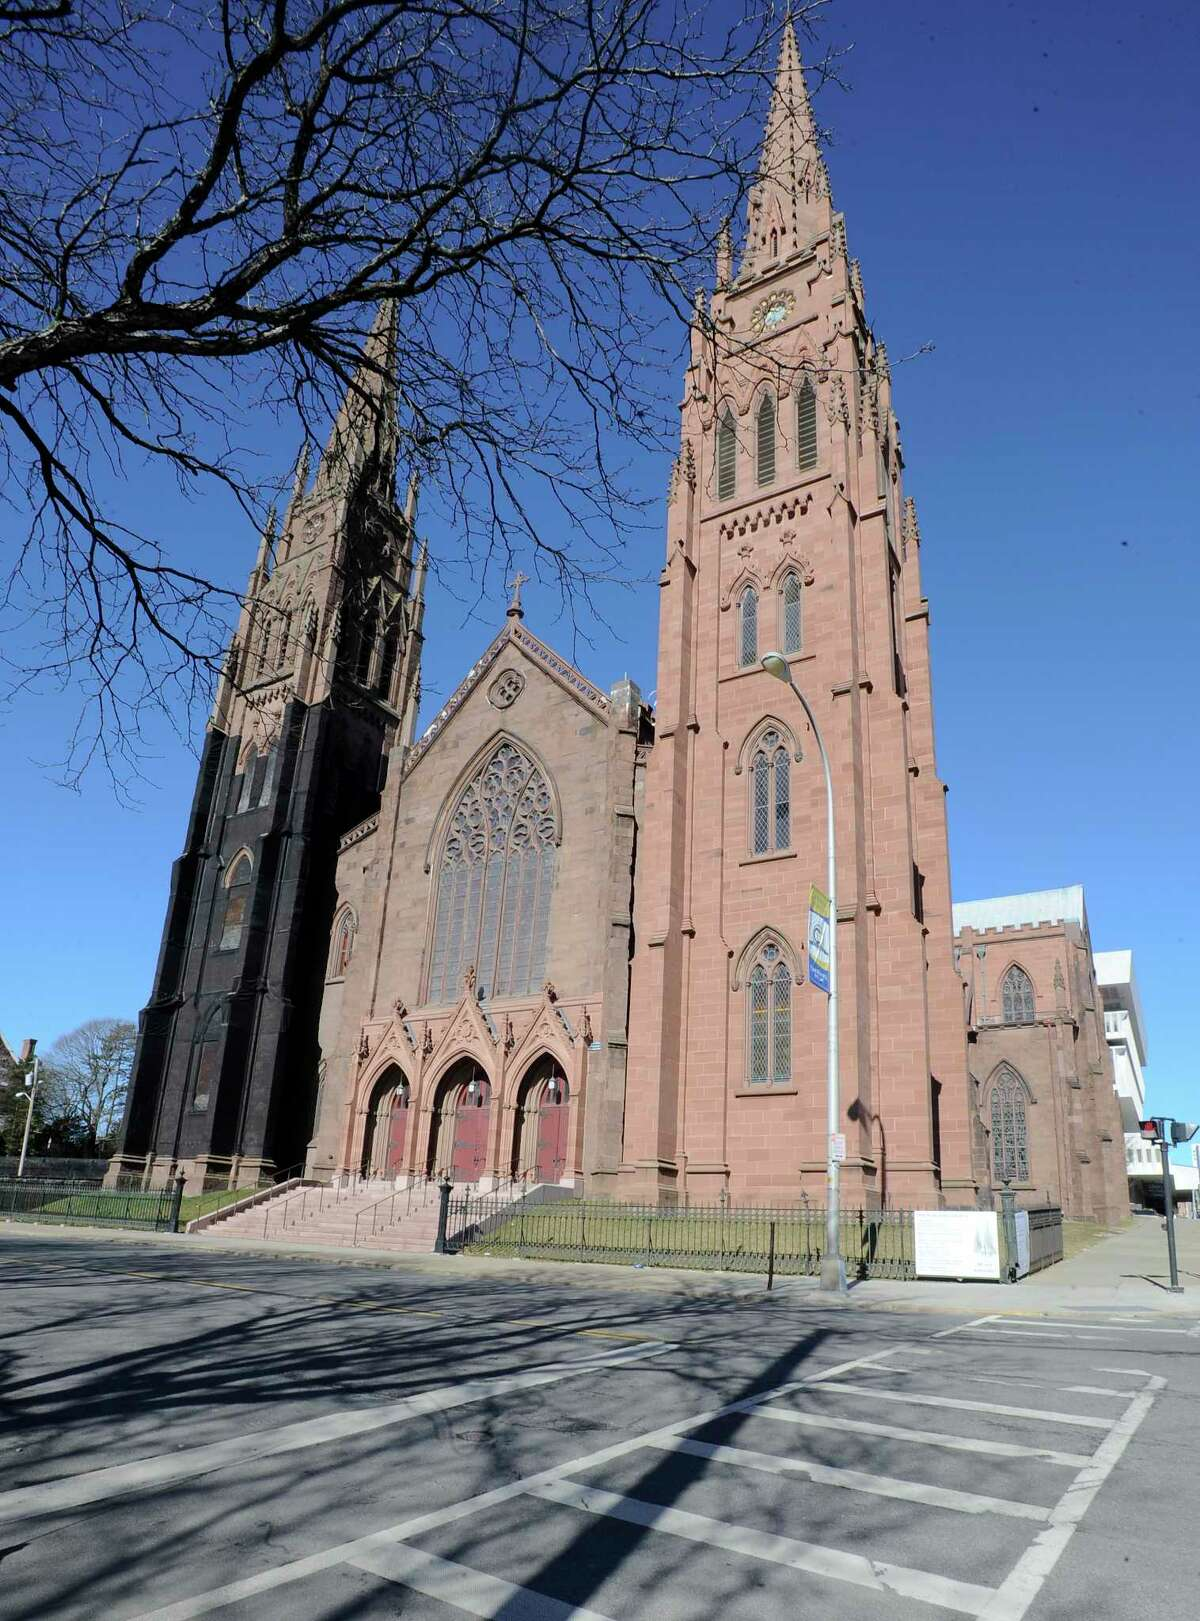 Exterior of Cathedral of the Immaculate Conception church for Easter service on Saturday, March 31, 2018, in Albany, N.Y. (Hans Pennink / Special to the Times Union)